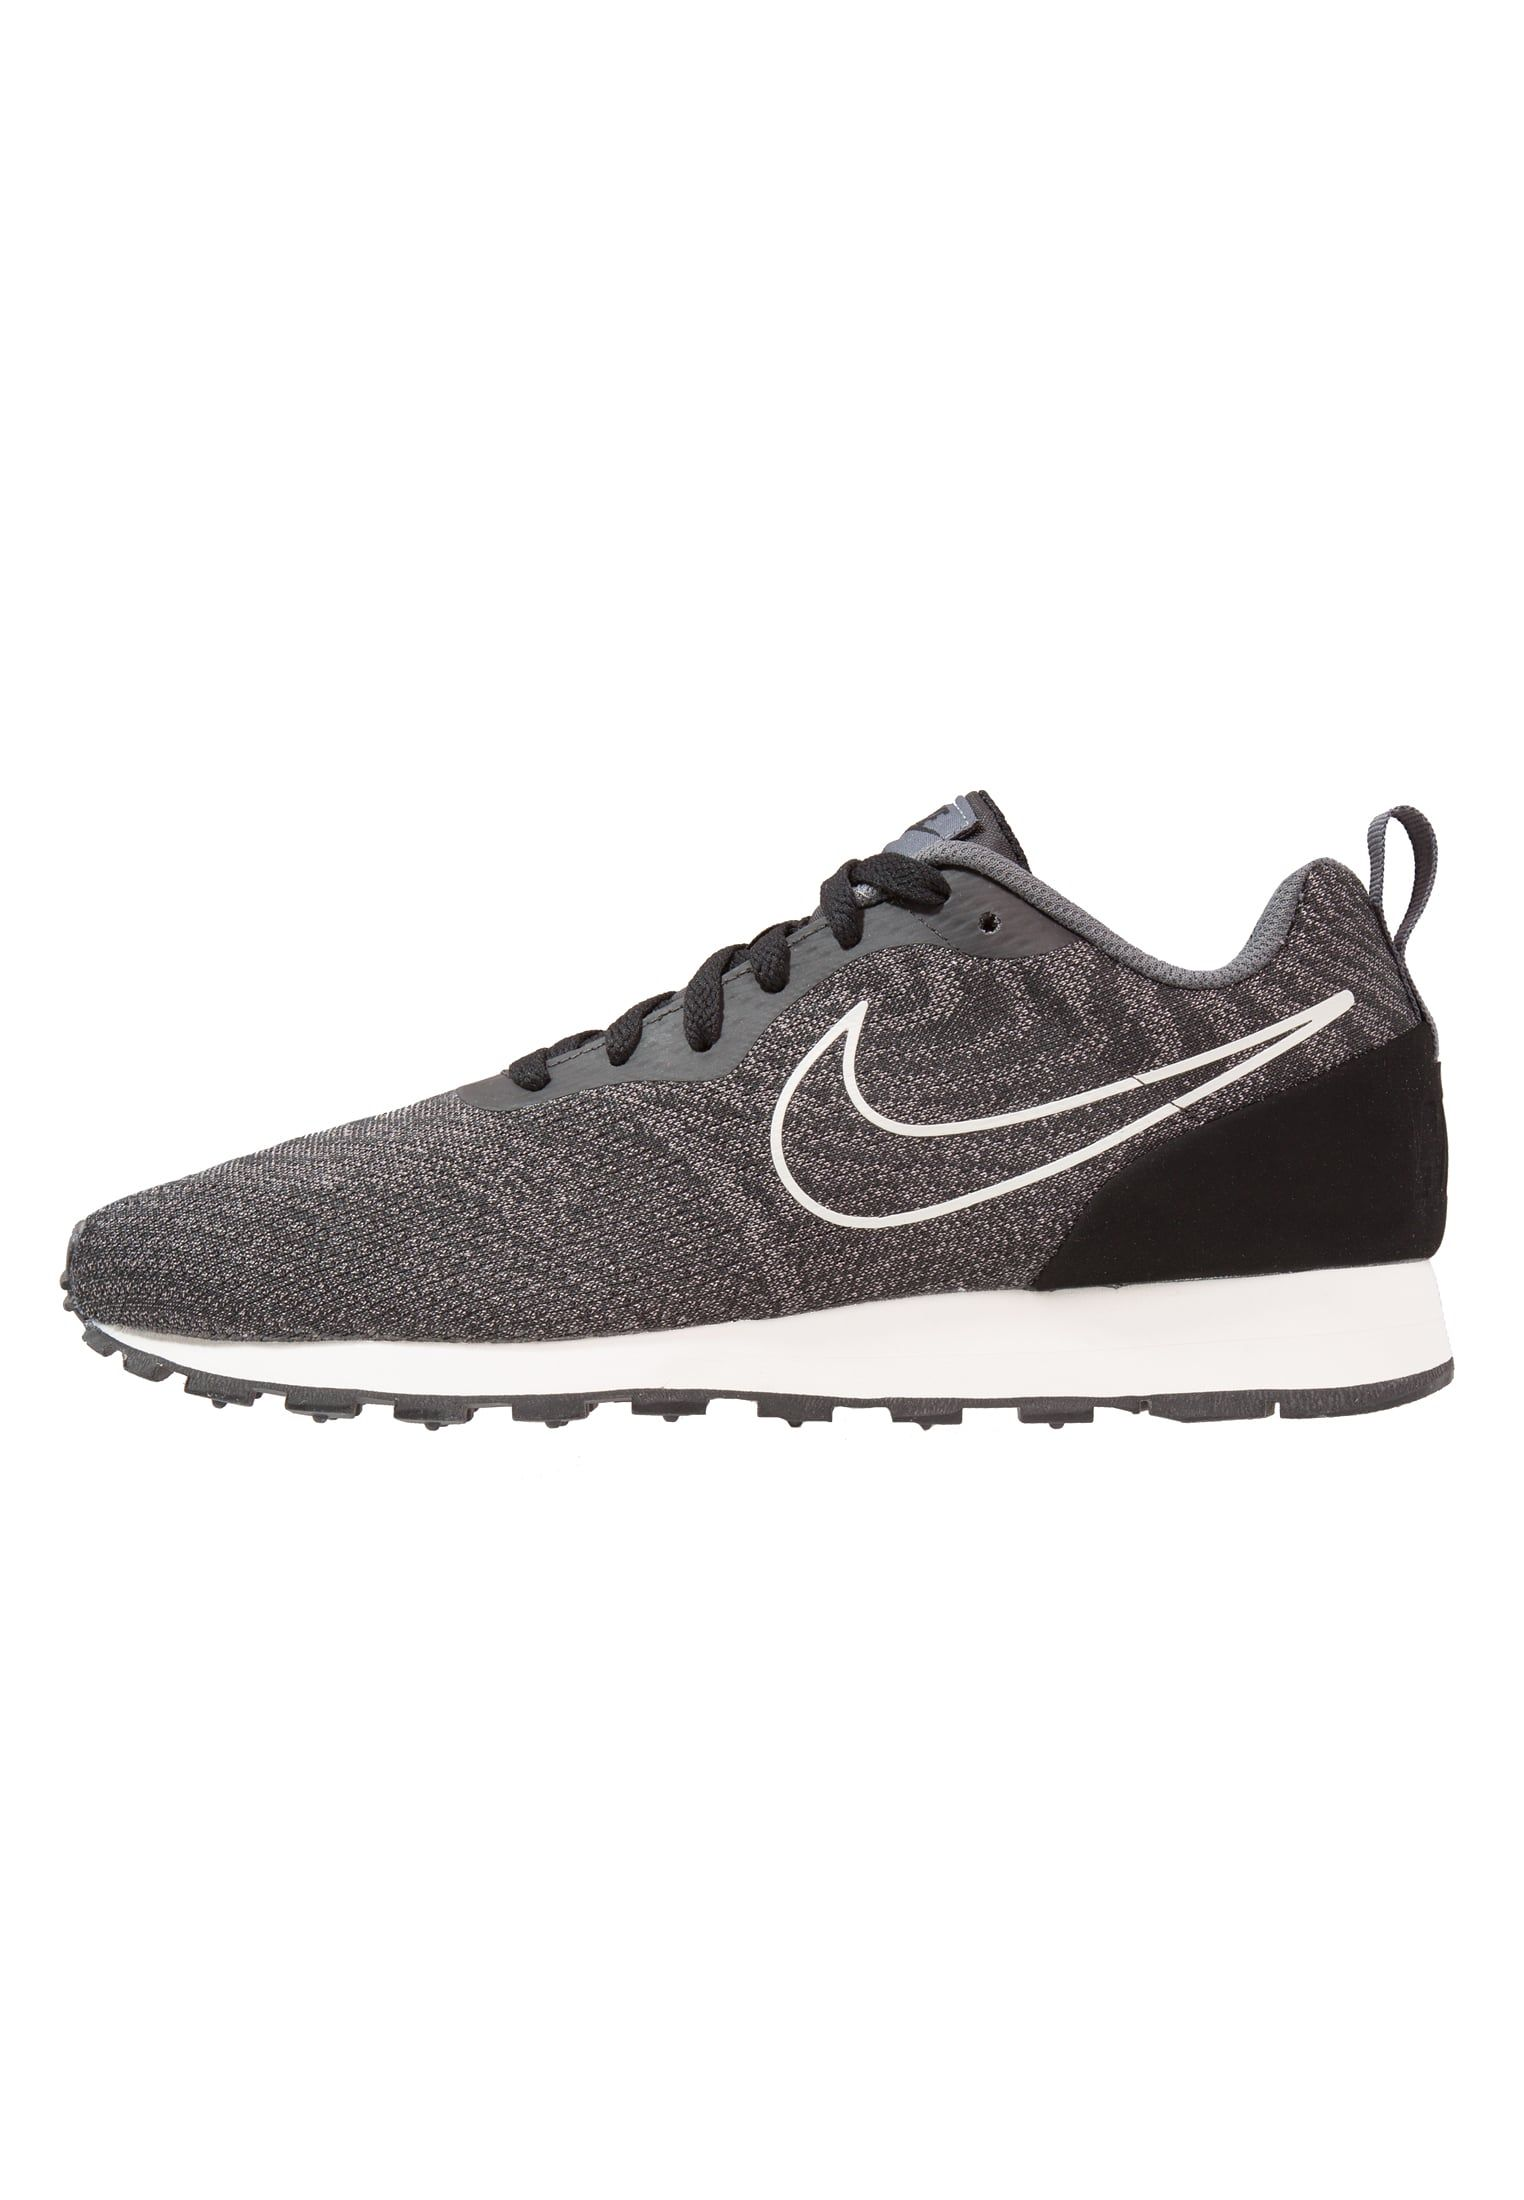 Nike Sportswear MD RUNNER 2 ENG MESH - Trainers - black/dark grey pryuFEJt0L